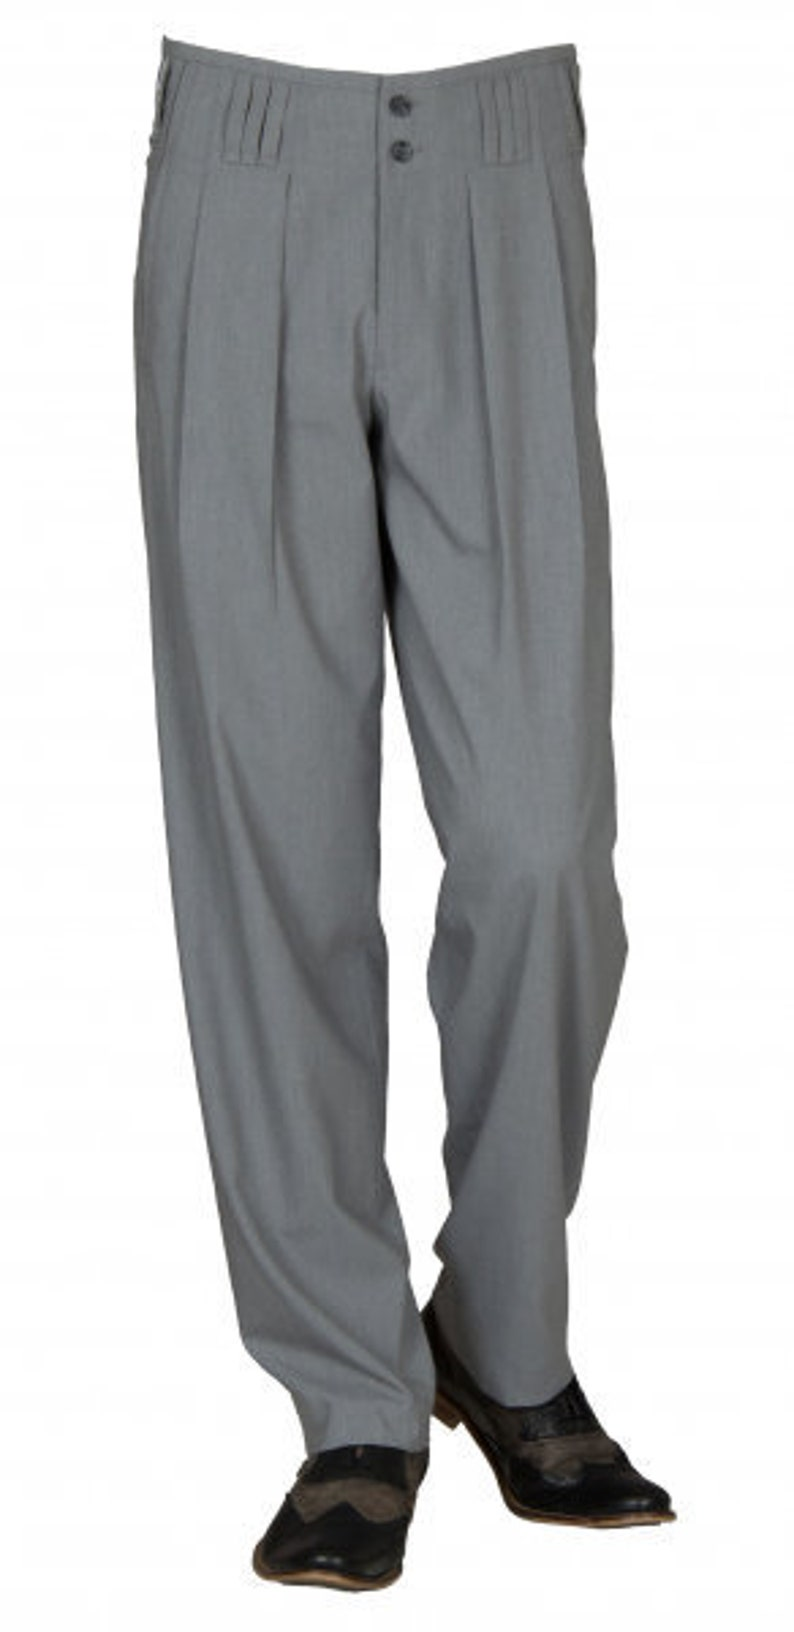 1940s UK and Europe Men's Clothing – WW2, Swing Dance, Goodwin Waistband pants in grey model boogie retro vintage style business suit pants in cotton blend with extra wide cut leg. $91.69 AT vintagedancer.com